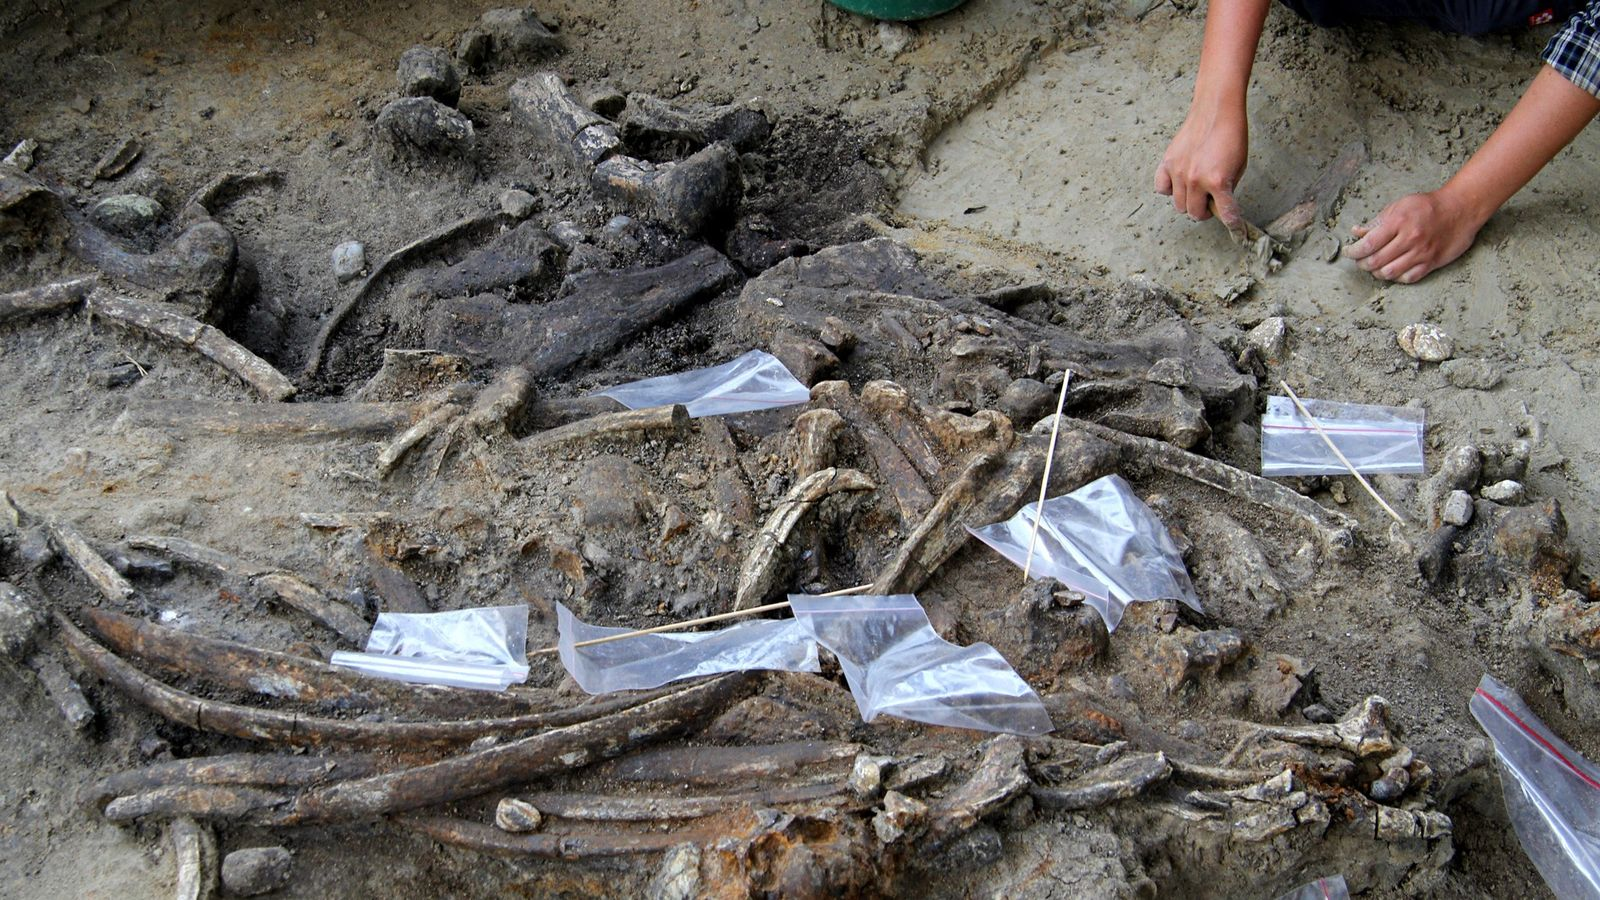 Researchers found a 700,000-year-old site on the Philippine island of Luzon where unknown hominins butchered a ...